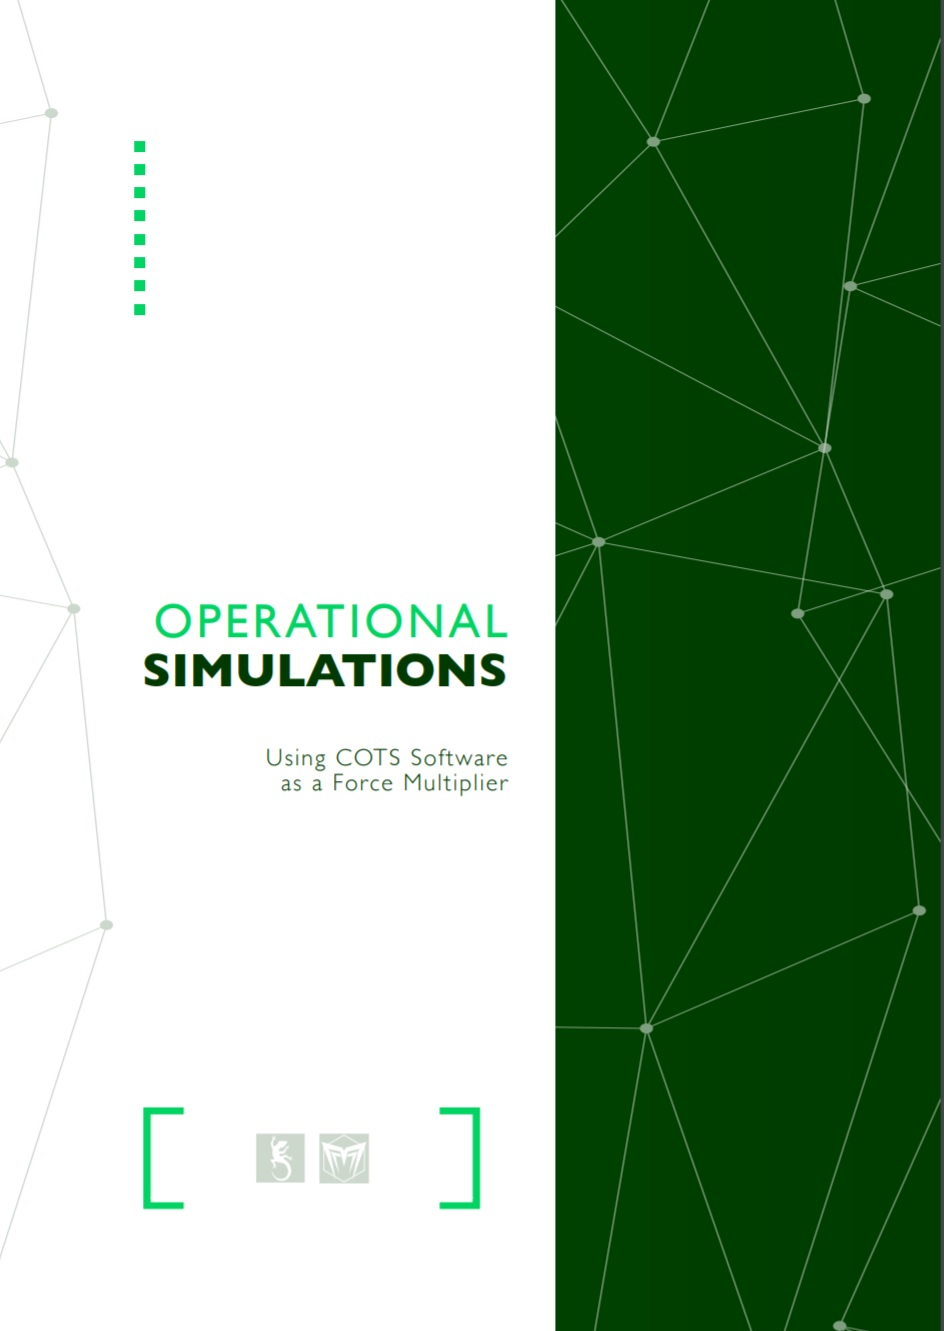 Operational Simulations - Using COTS Software as a Force Multiplier